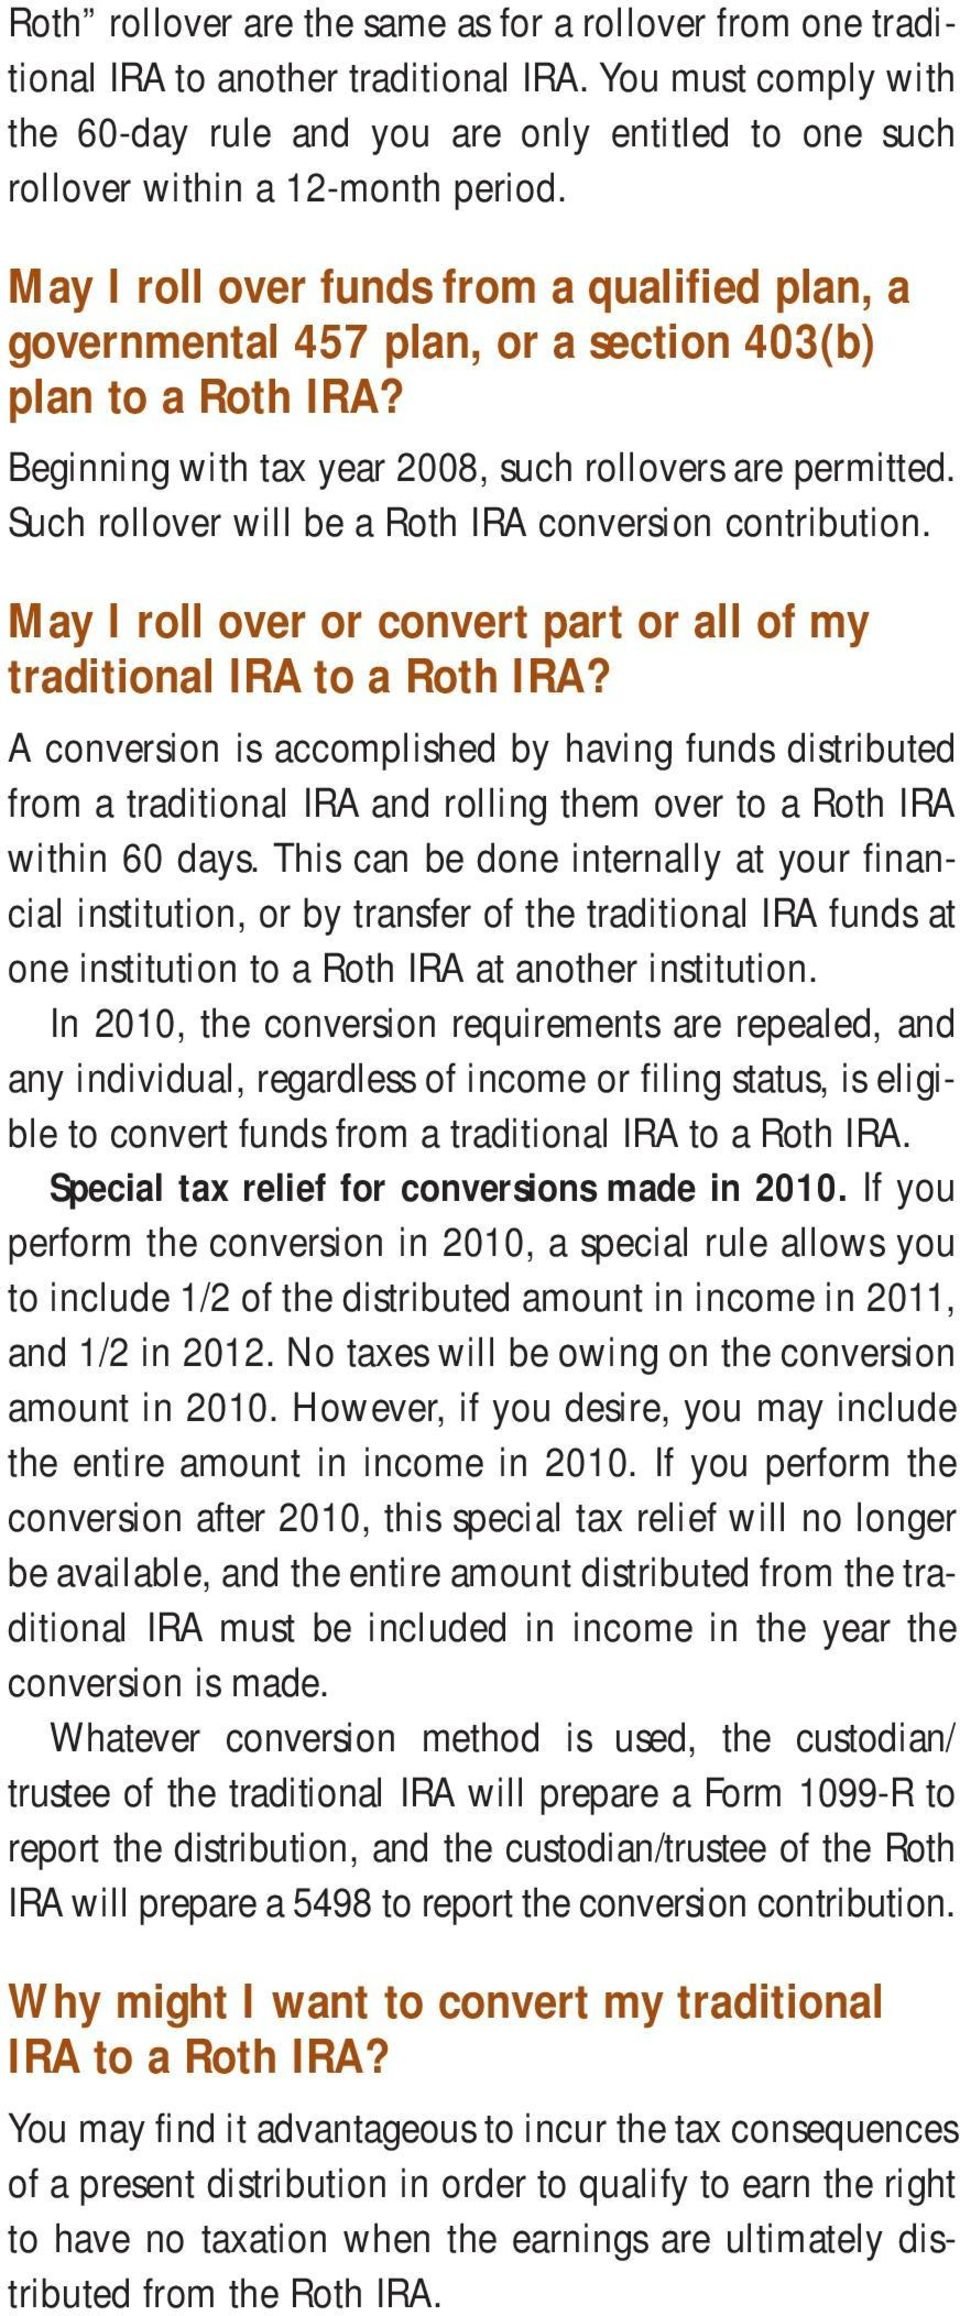 May I roll over funds from a qualified plan, a governmental 457 plan, or a section 403(b) plan to a Roth IRA? Beginning with tax year 2008, such rollovers are permitted.